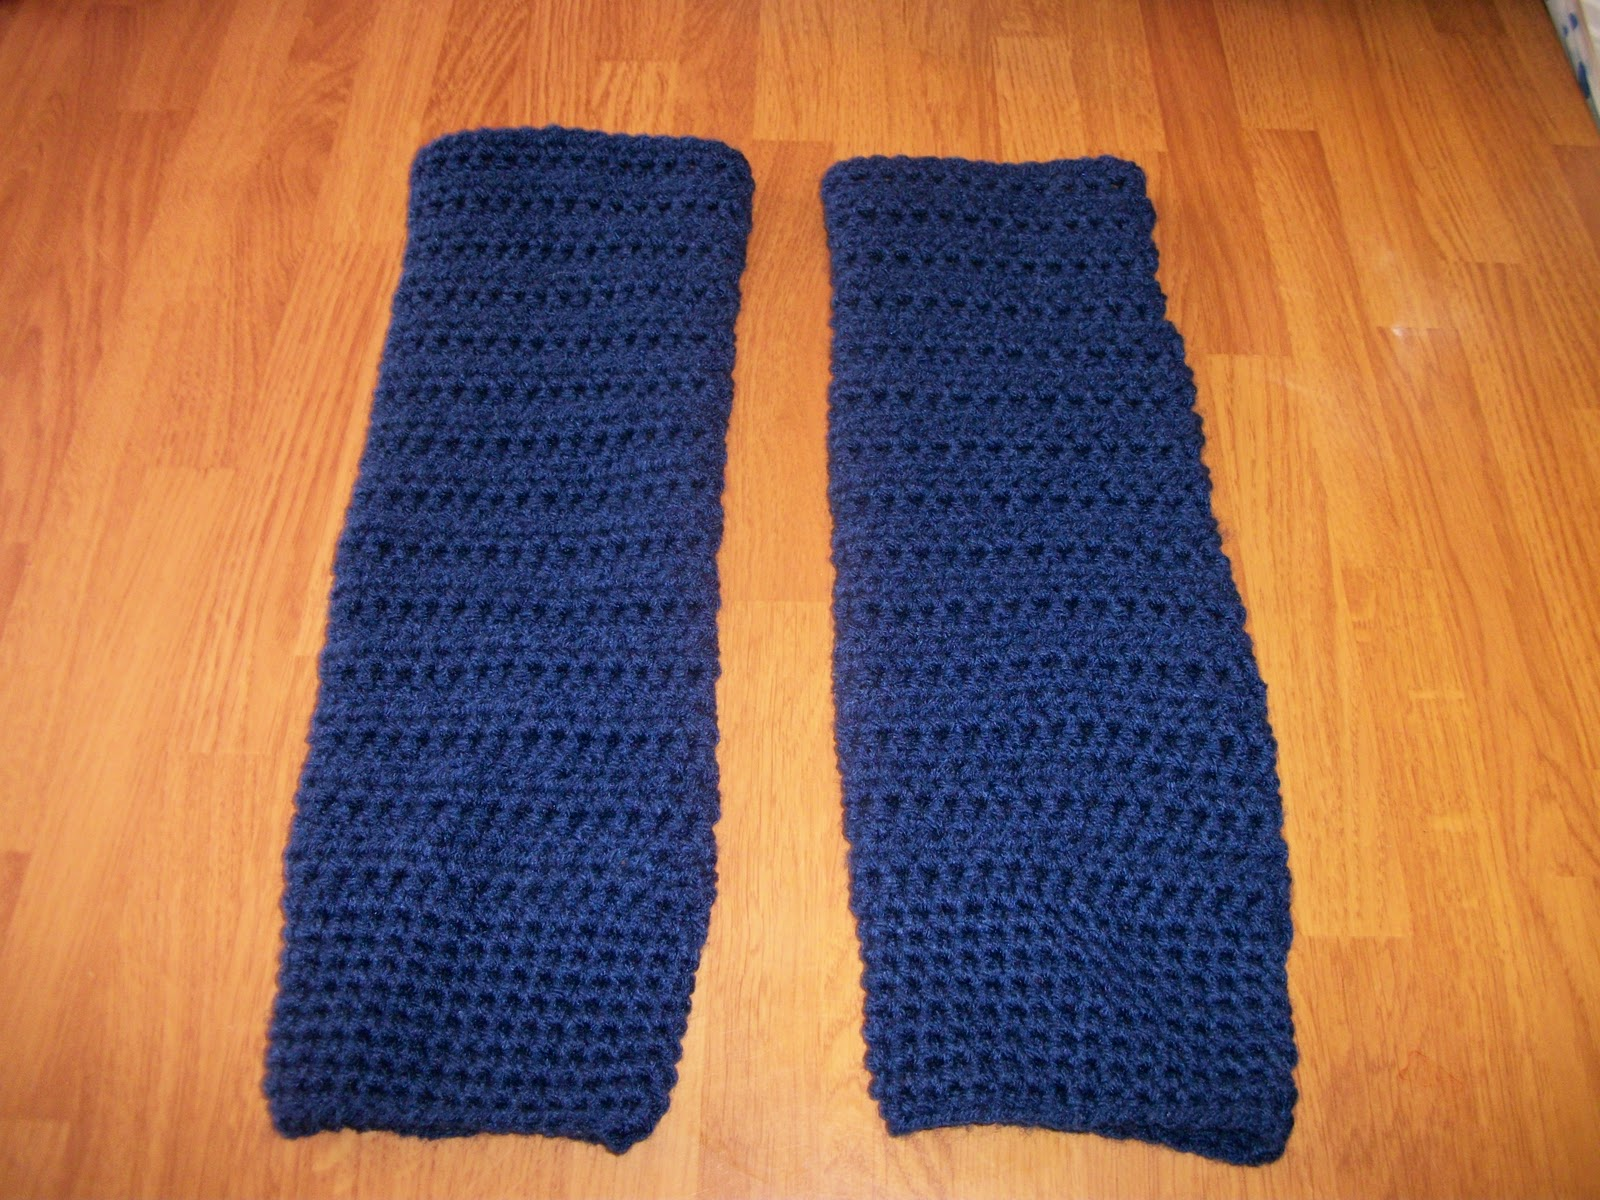 Colletta\'s Kitchen Sink: Crocheted Leg Warmers